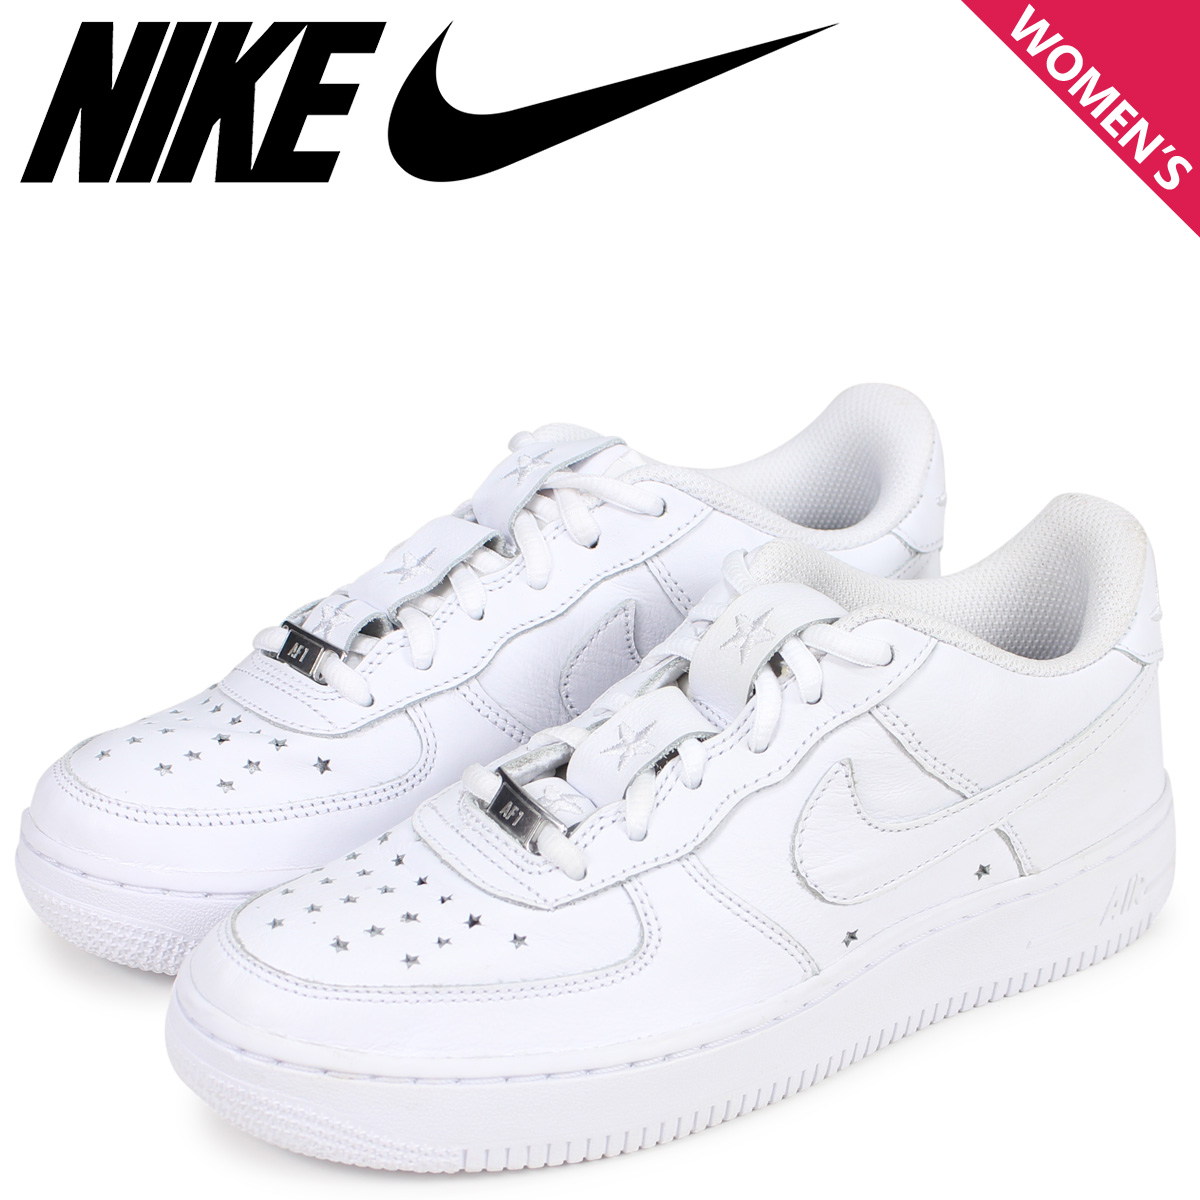 NIKE ナイキ エアフォース1 スニーカー レディース AIR FORCE 1 LOW GS INDEPENDENCE DAY PACK ホワイト 白 AR0688-100 [4/3 新入荷]